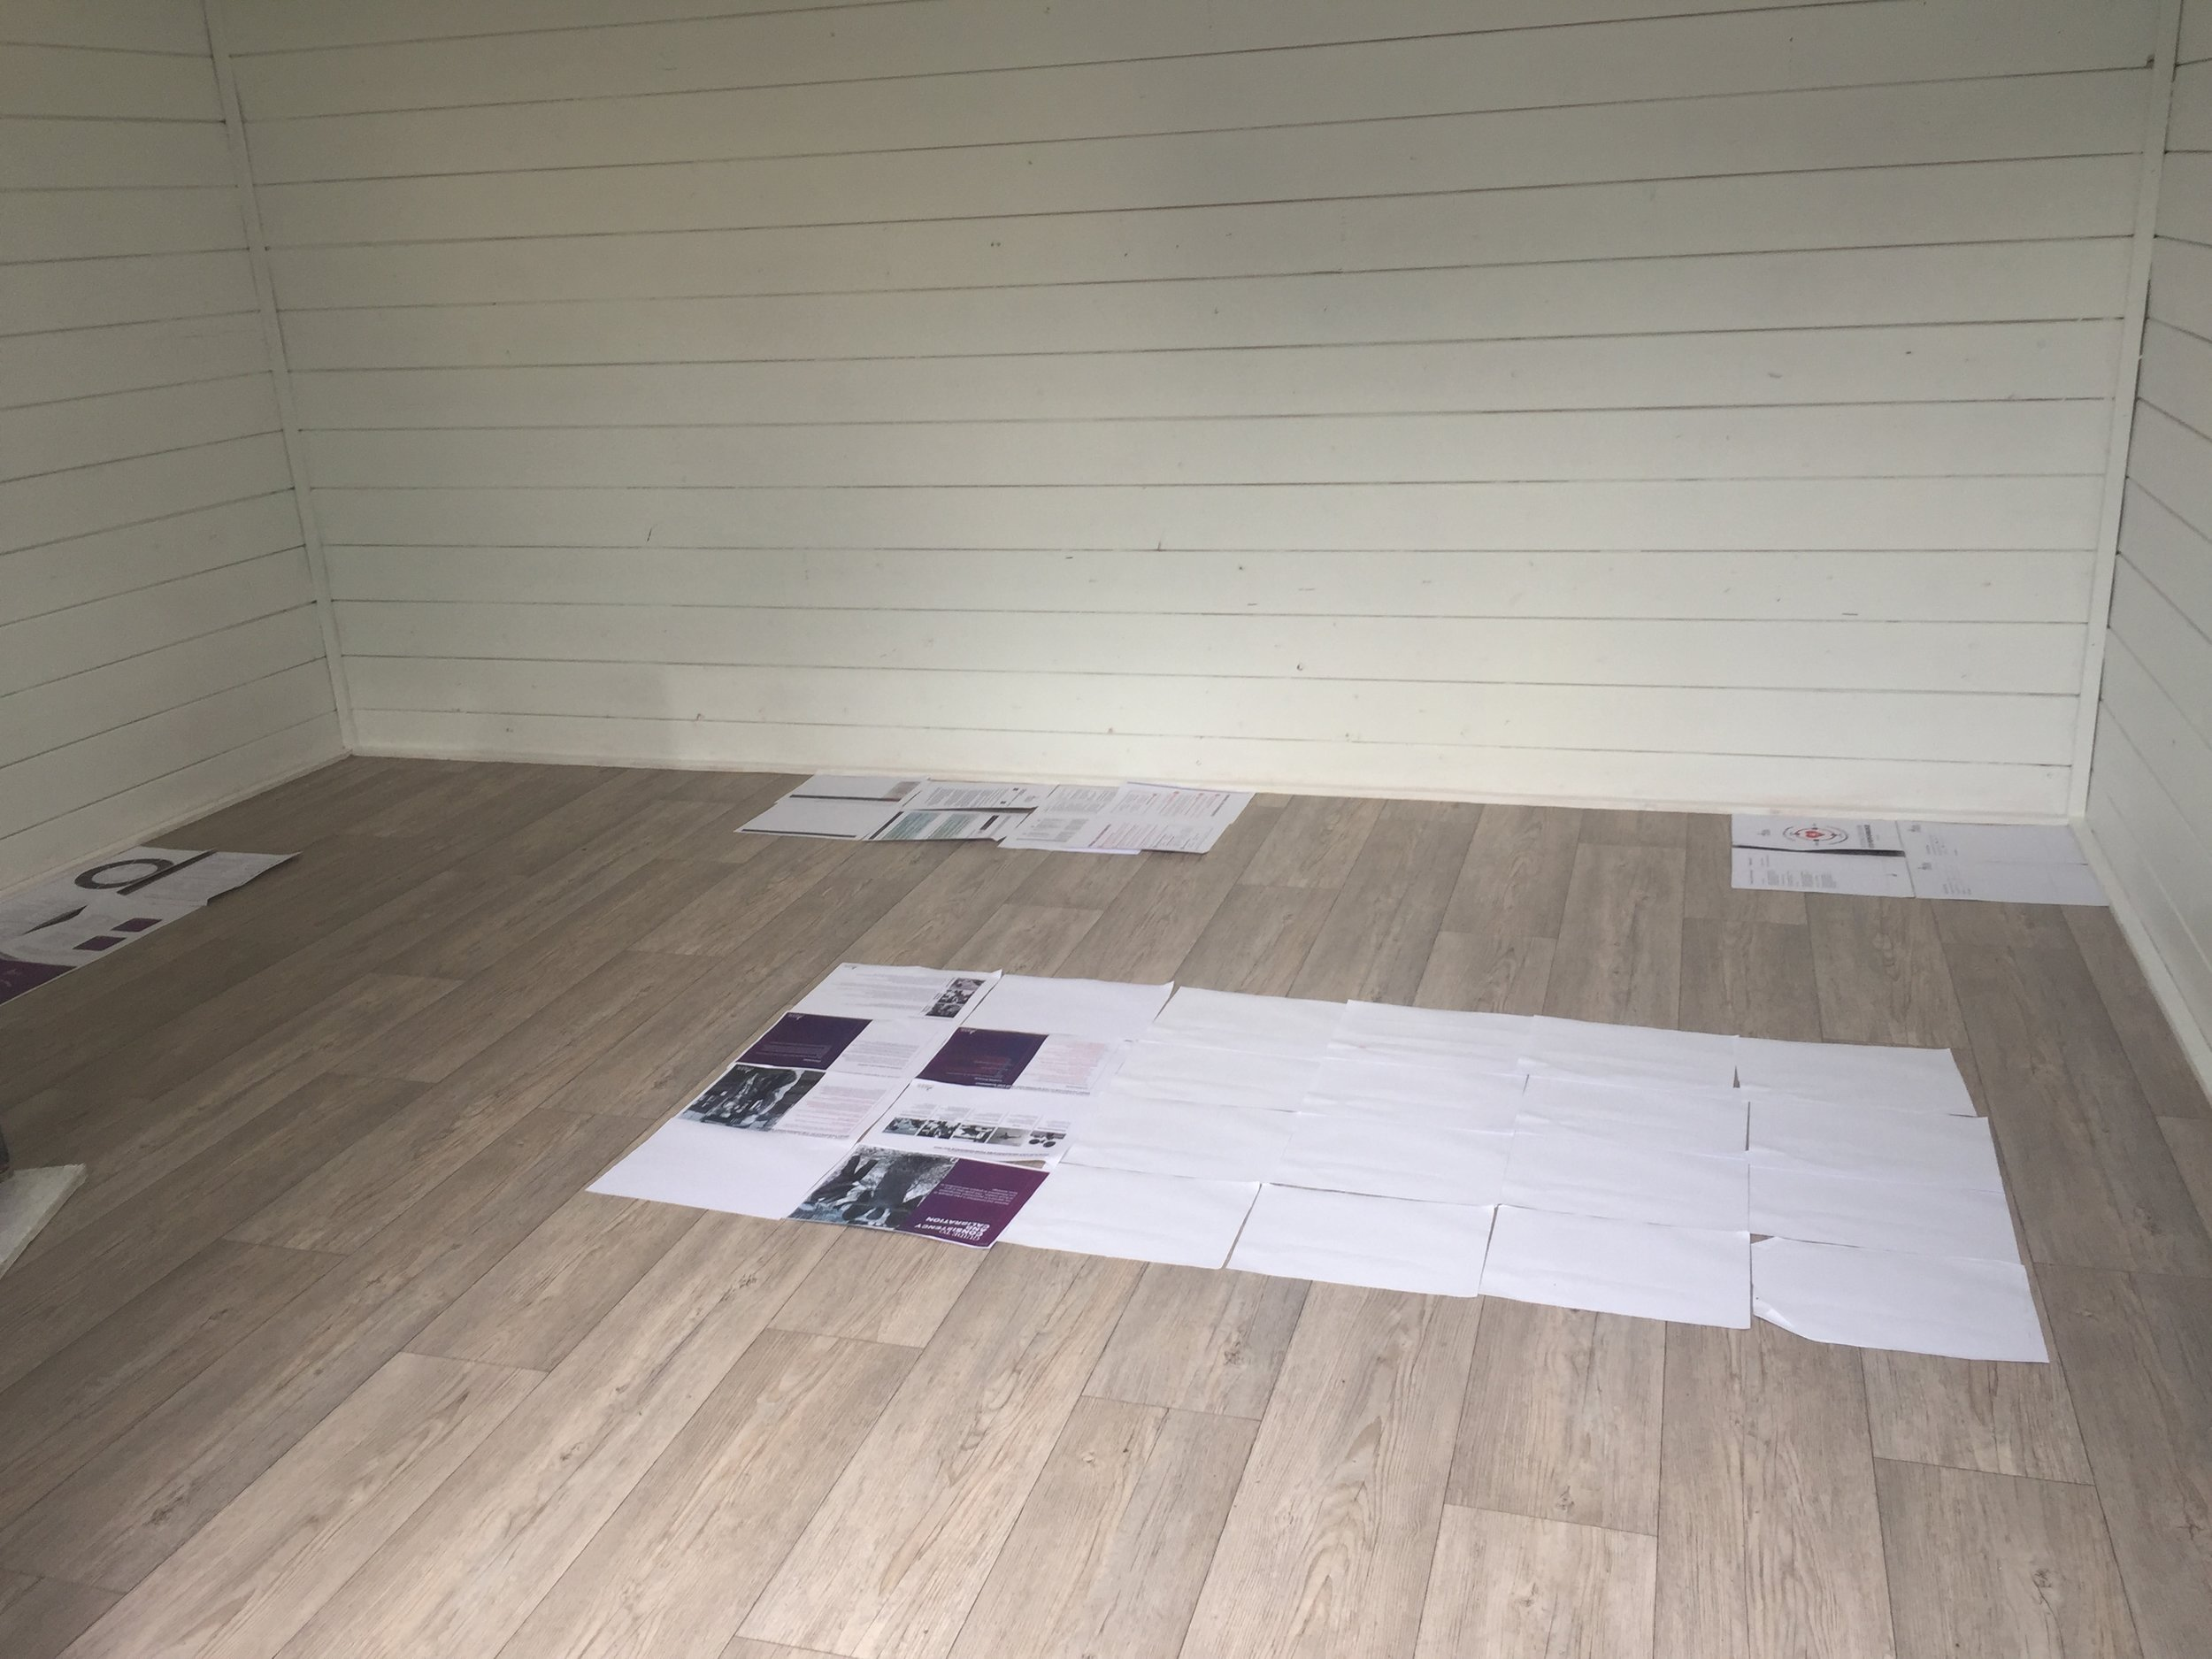 Planning the size and position of furniture by plotting out the space using paper.